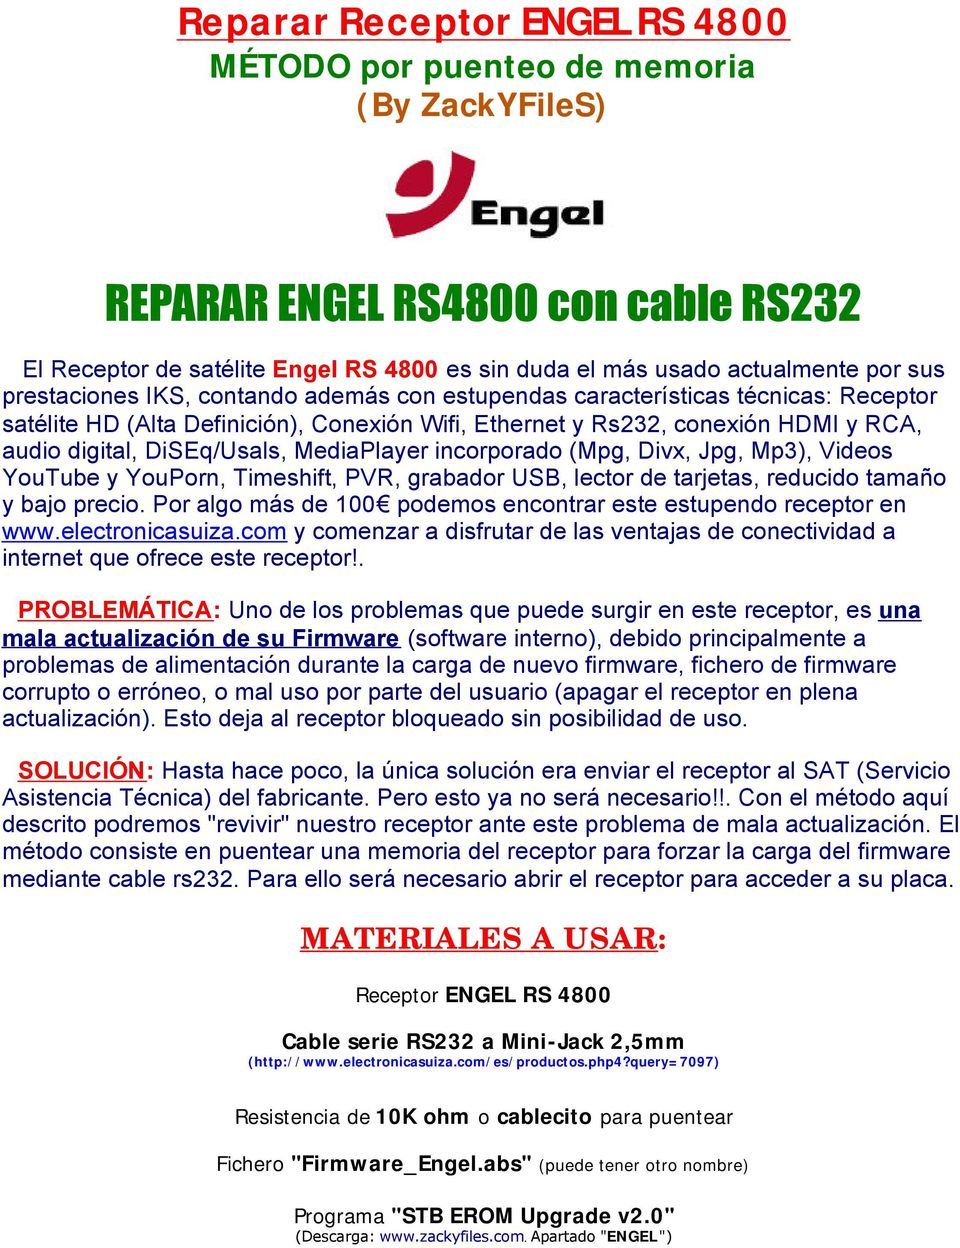 MATERIALES A USAR: Receptor ENGEL RS Cable serie RS232 a Mini-Jack 2